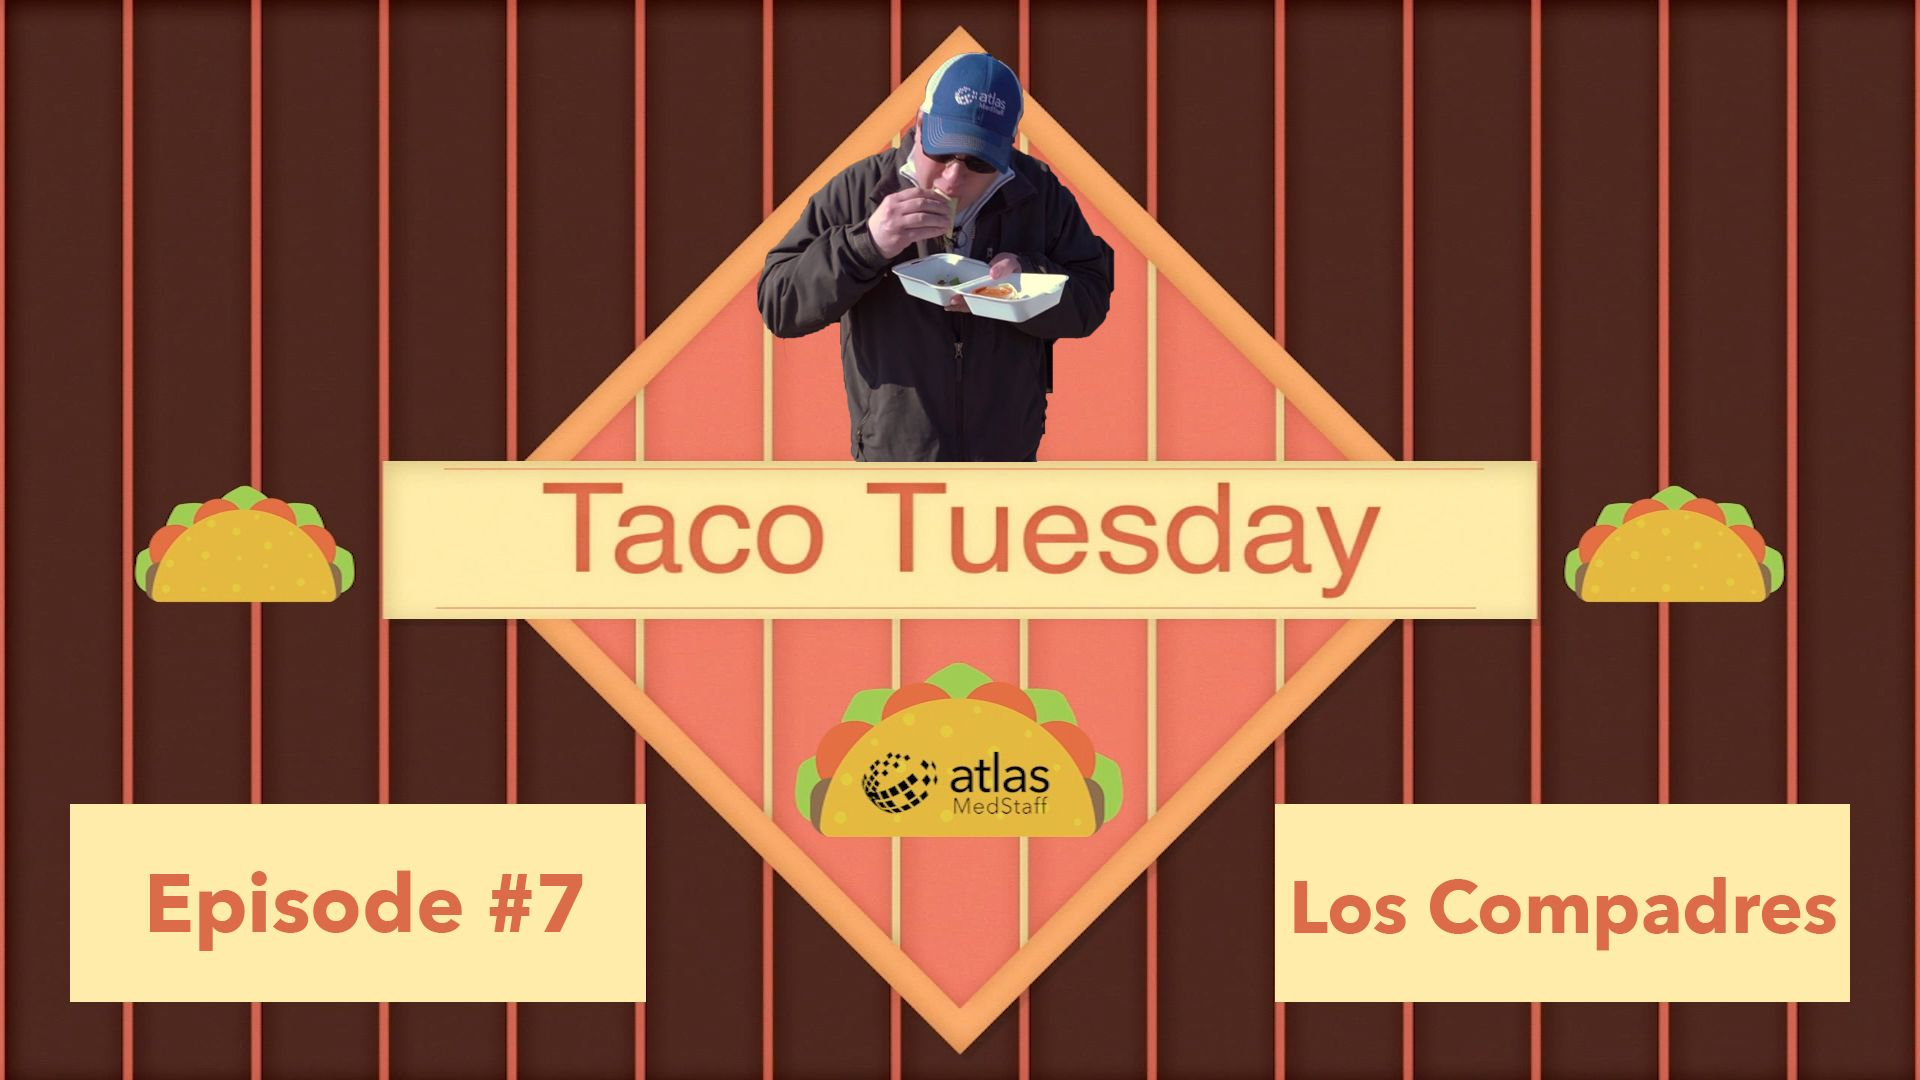 This week takes us to los compadres off of 108th and q in